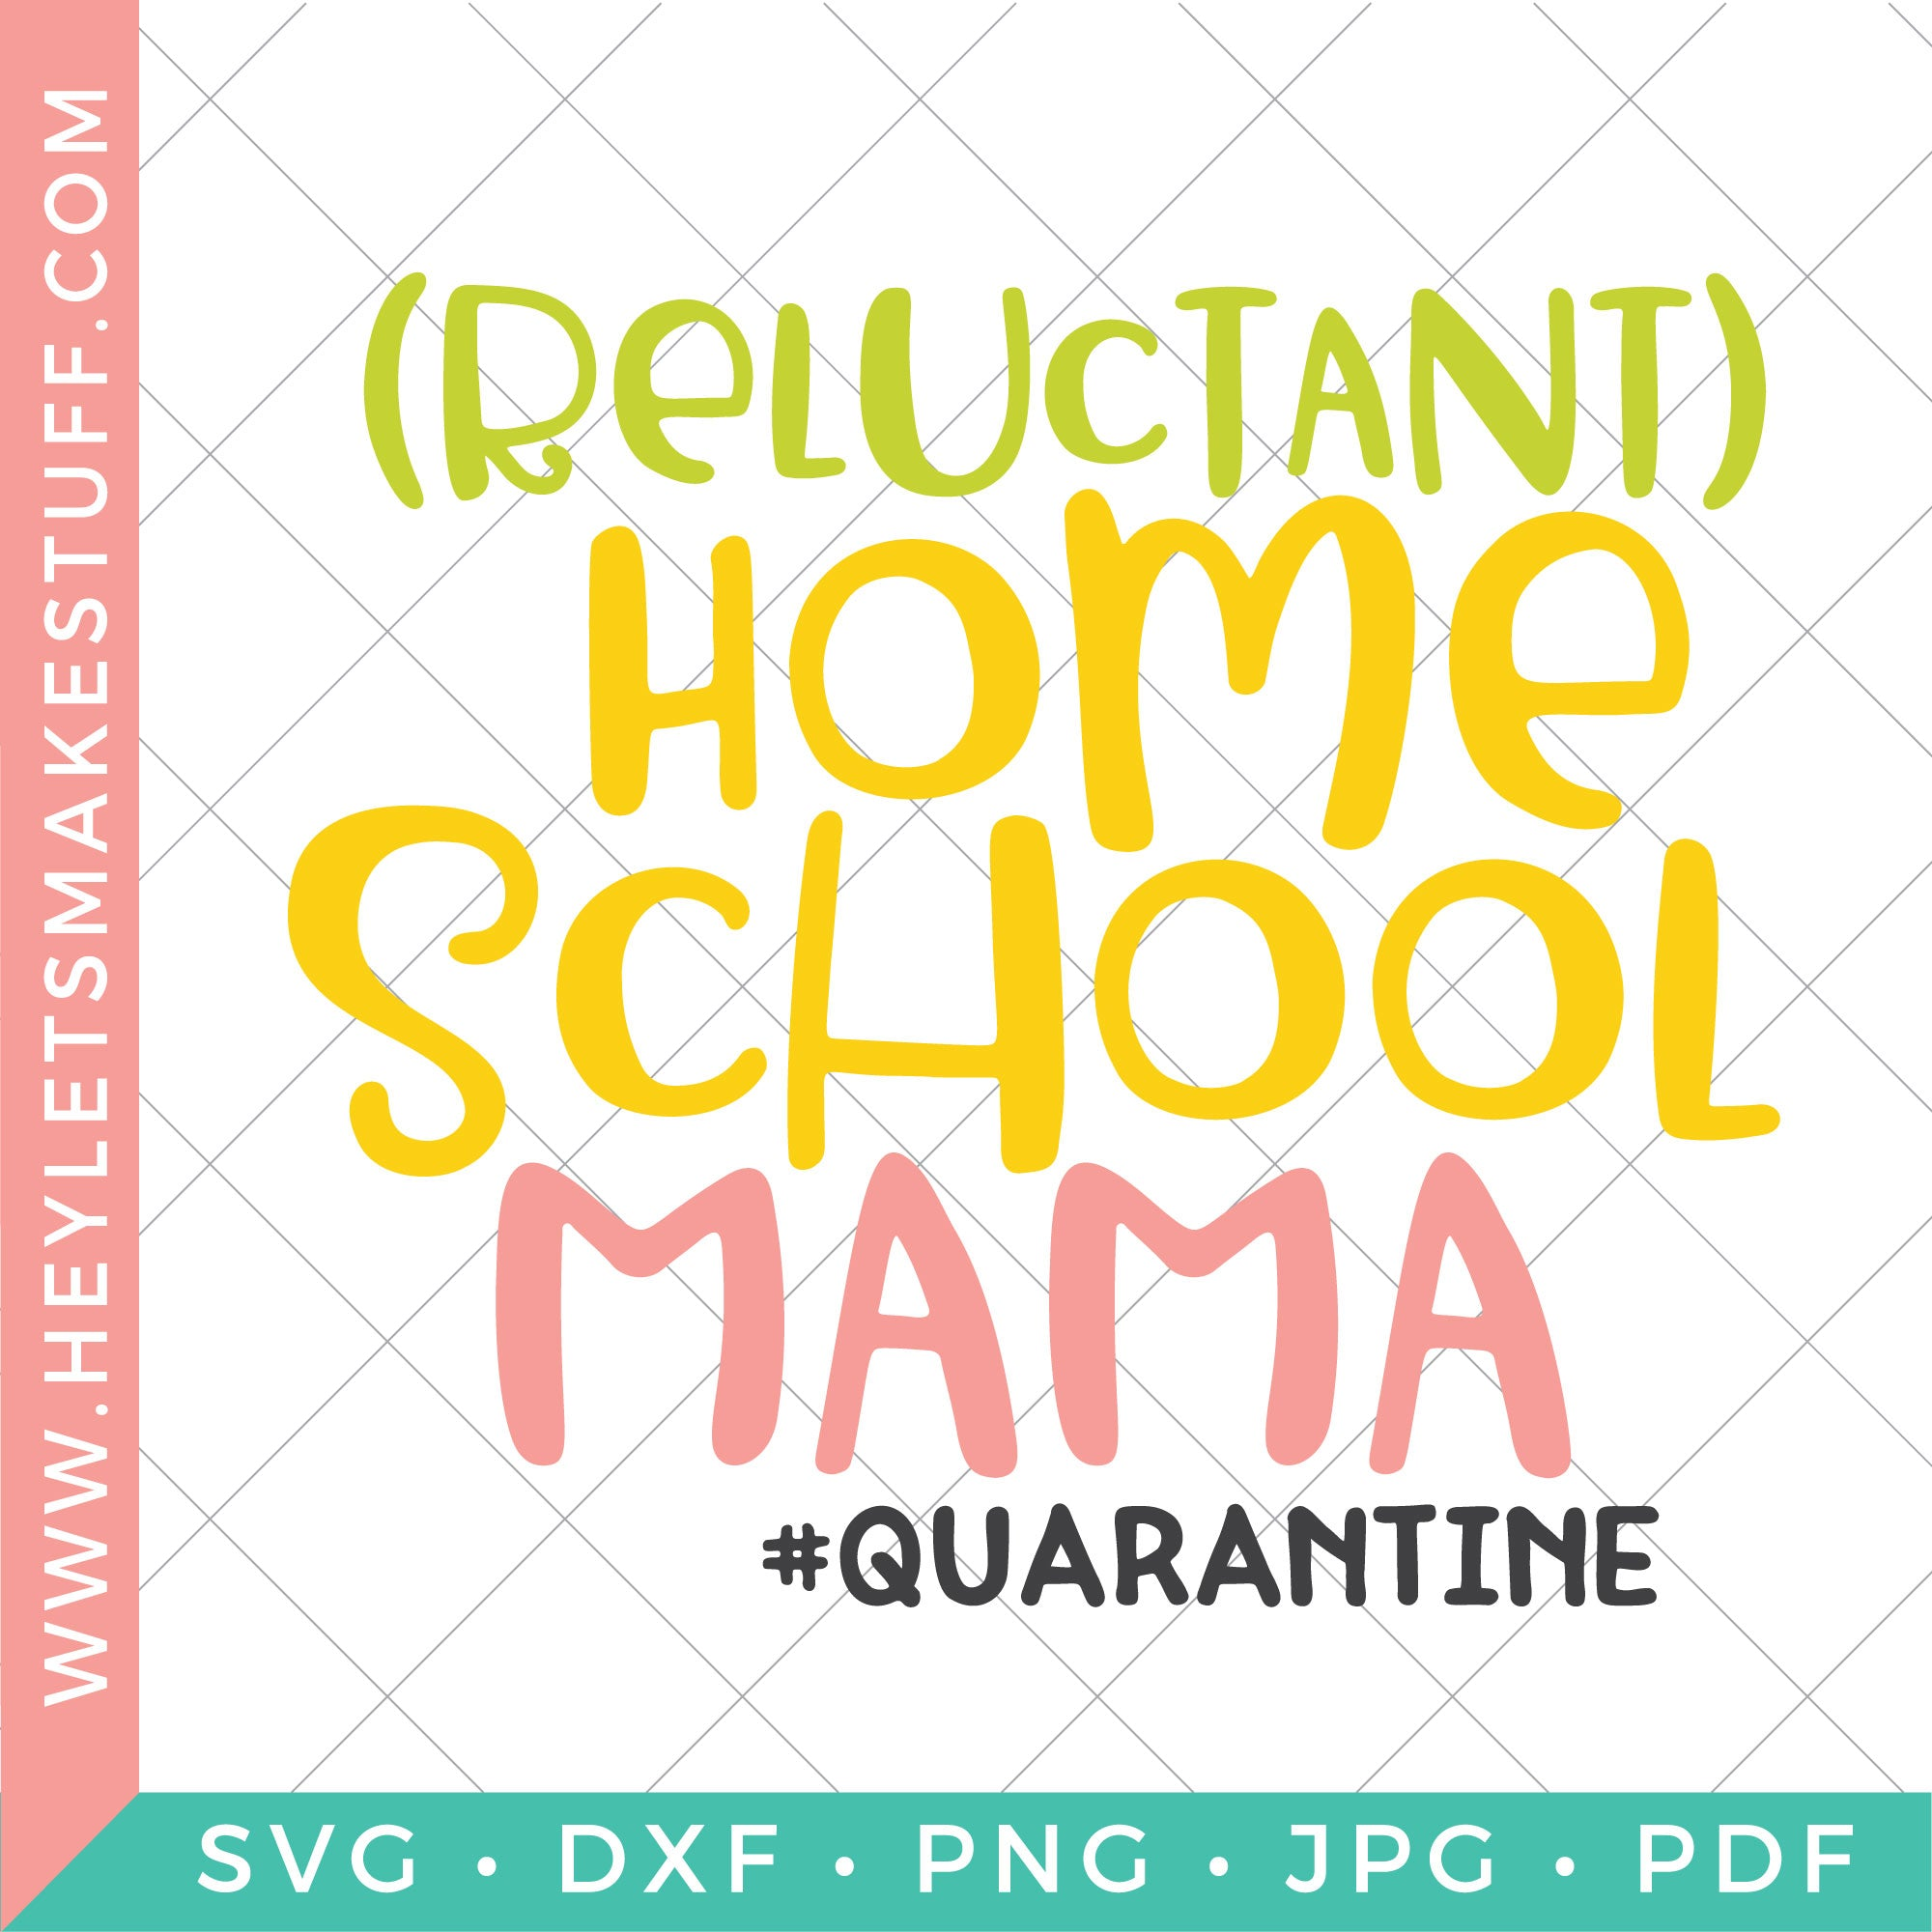 Reluctant Home School Mama